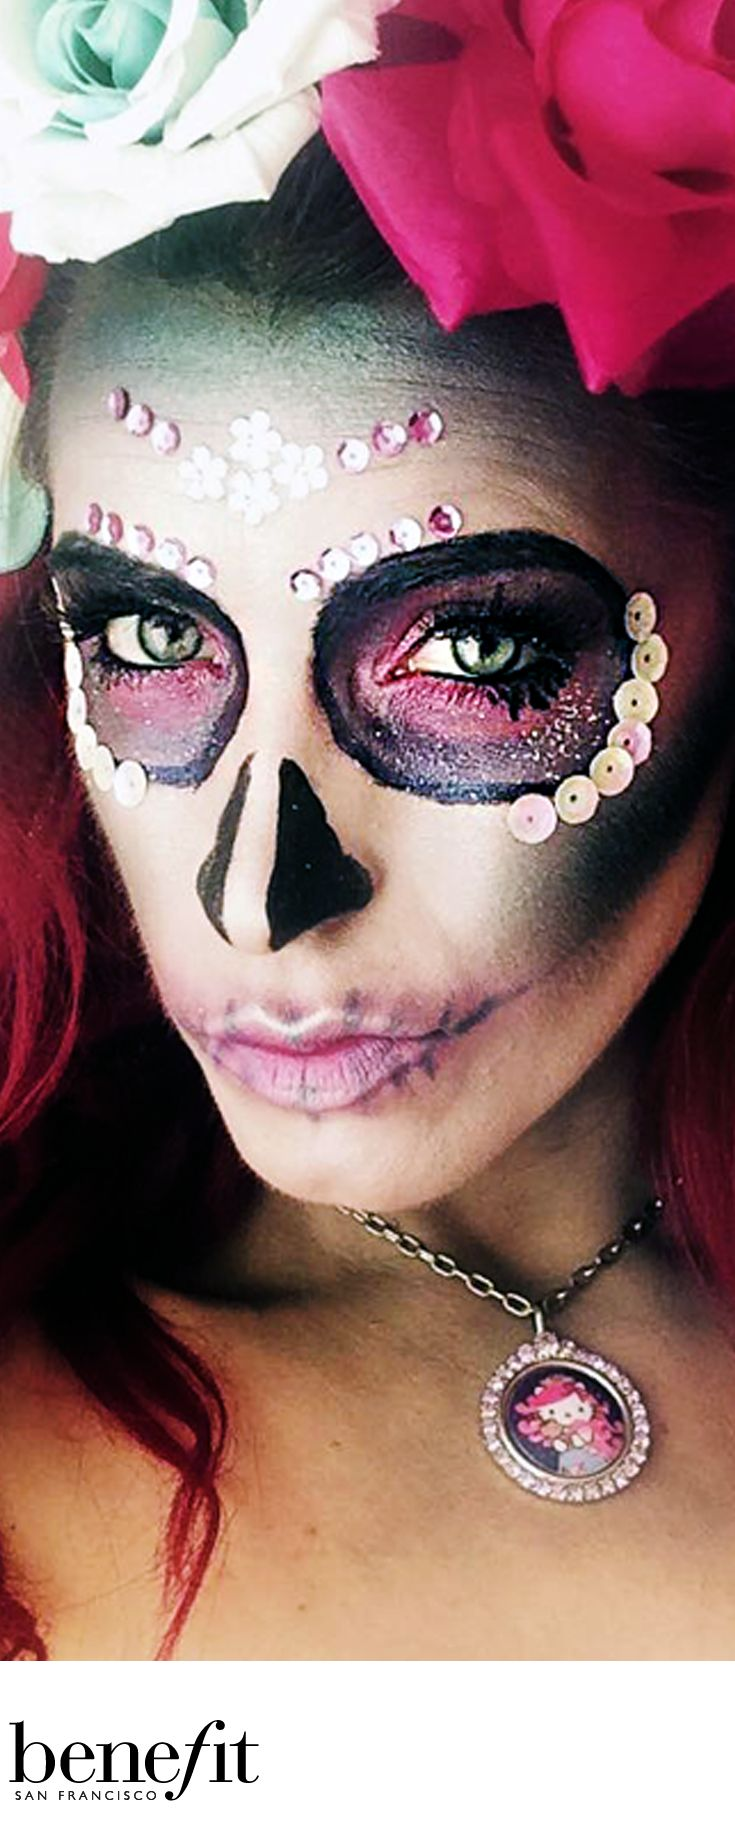 Check out this stunning makeup from our gorgeous Amy-Lou Faulkner who is part of our Trend Team at Benefit Cosmetics. This candy skull still manages to look scary but a hint of gorgeous with the pink tones! Perfect for a Halloween fancy dress party! xx